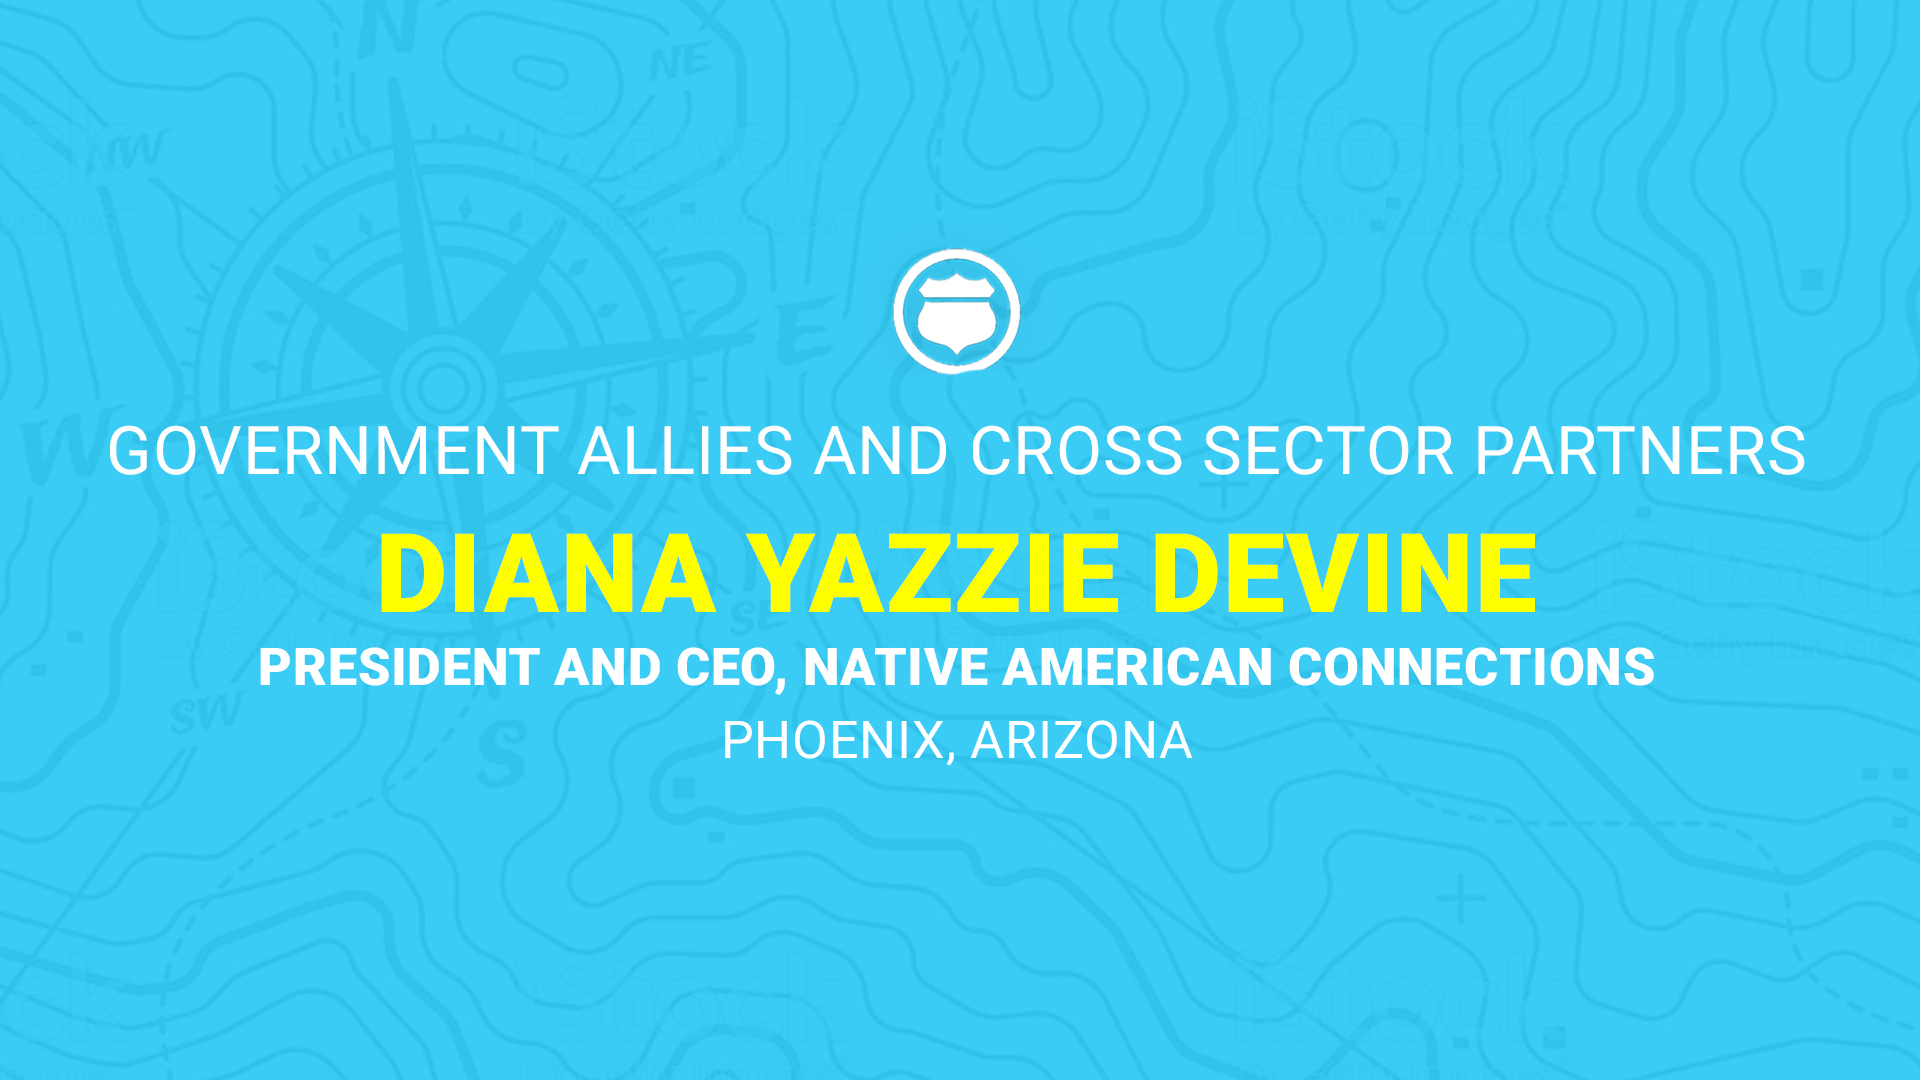 Finalist: Diana Yazzie Devine, President and CEO, Native American Connections, Phoenix, Arizona